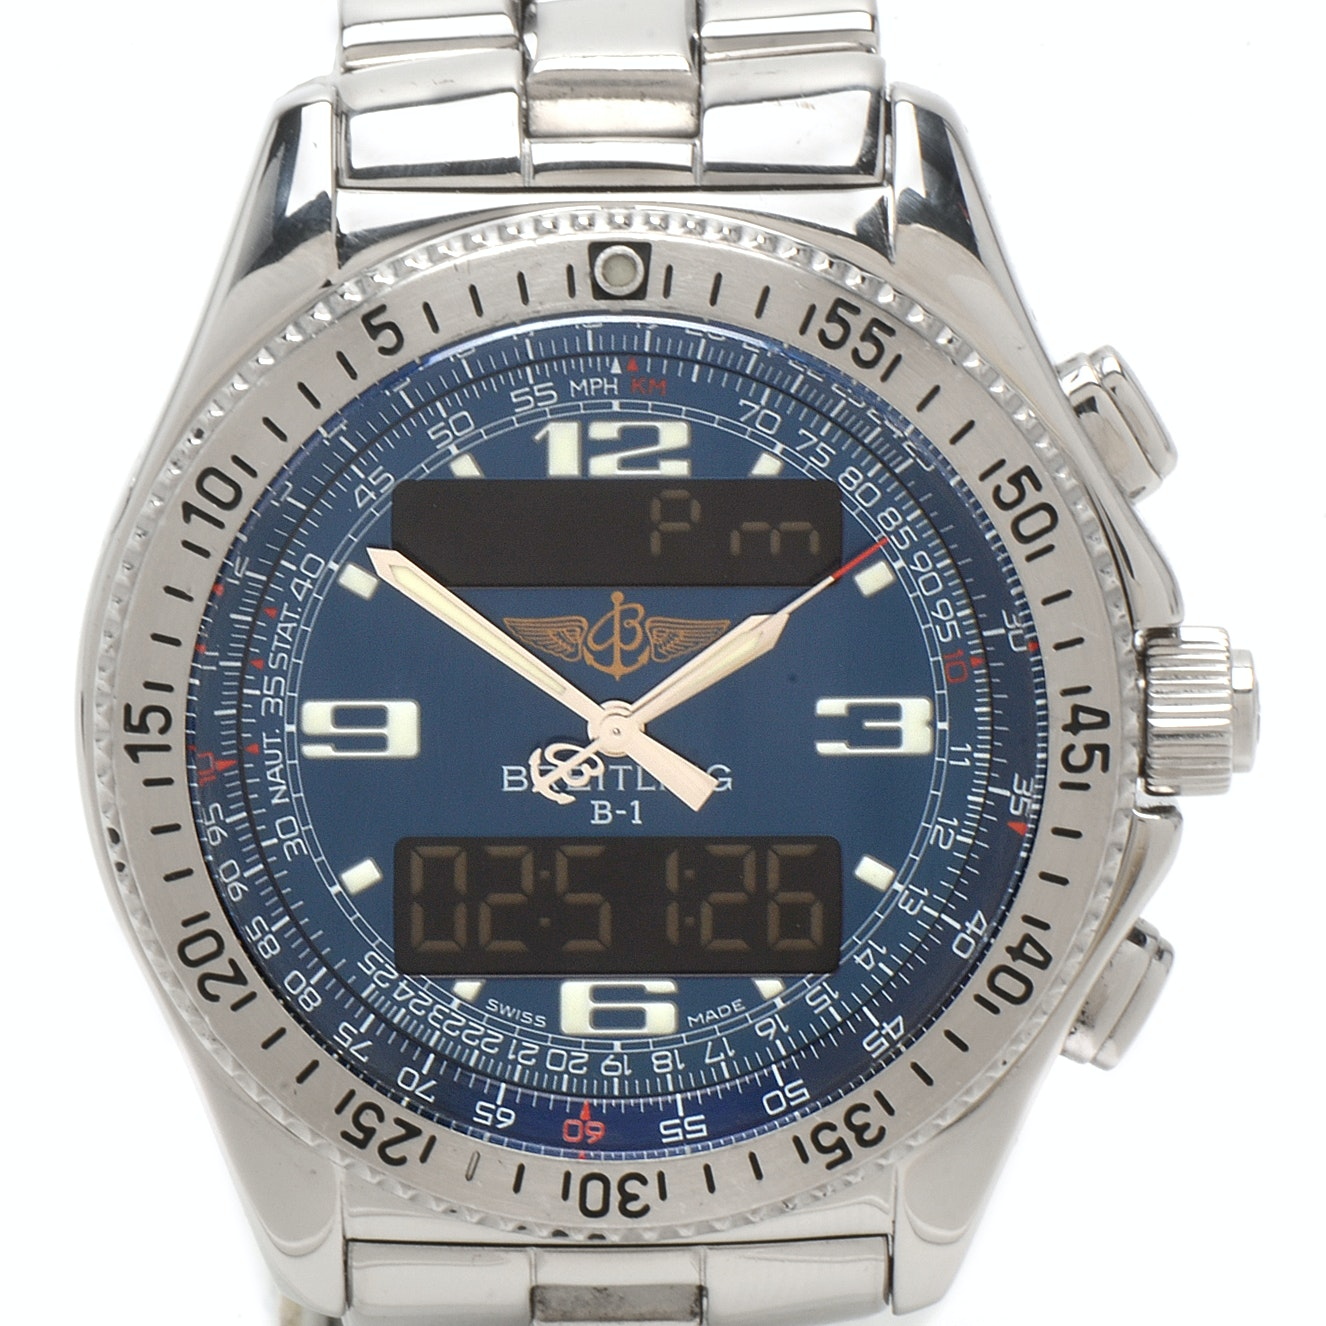 Breitling B-1 Quartz Chronograph Analog and Digital Stainless Steel Wristwatch